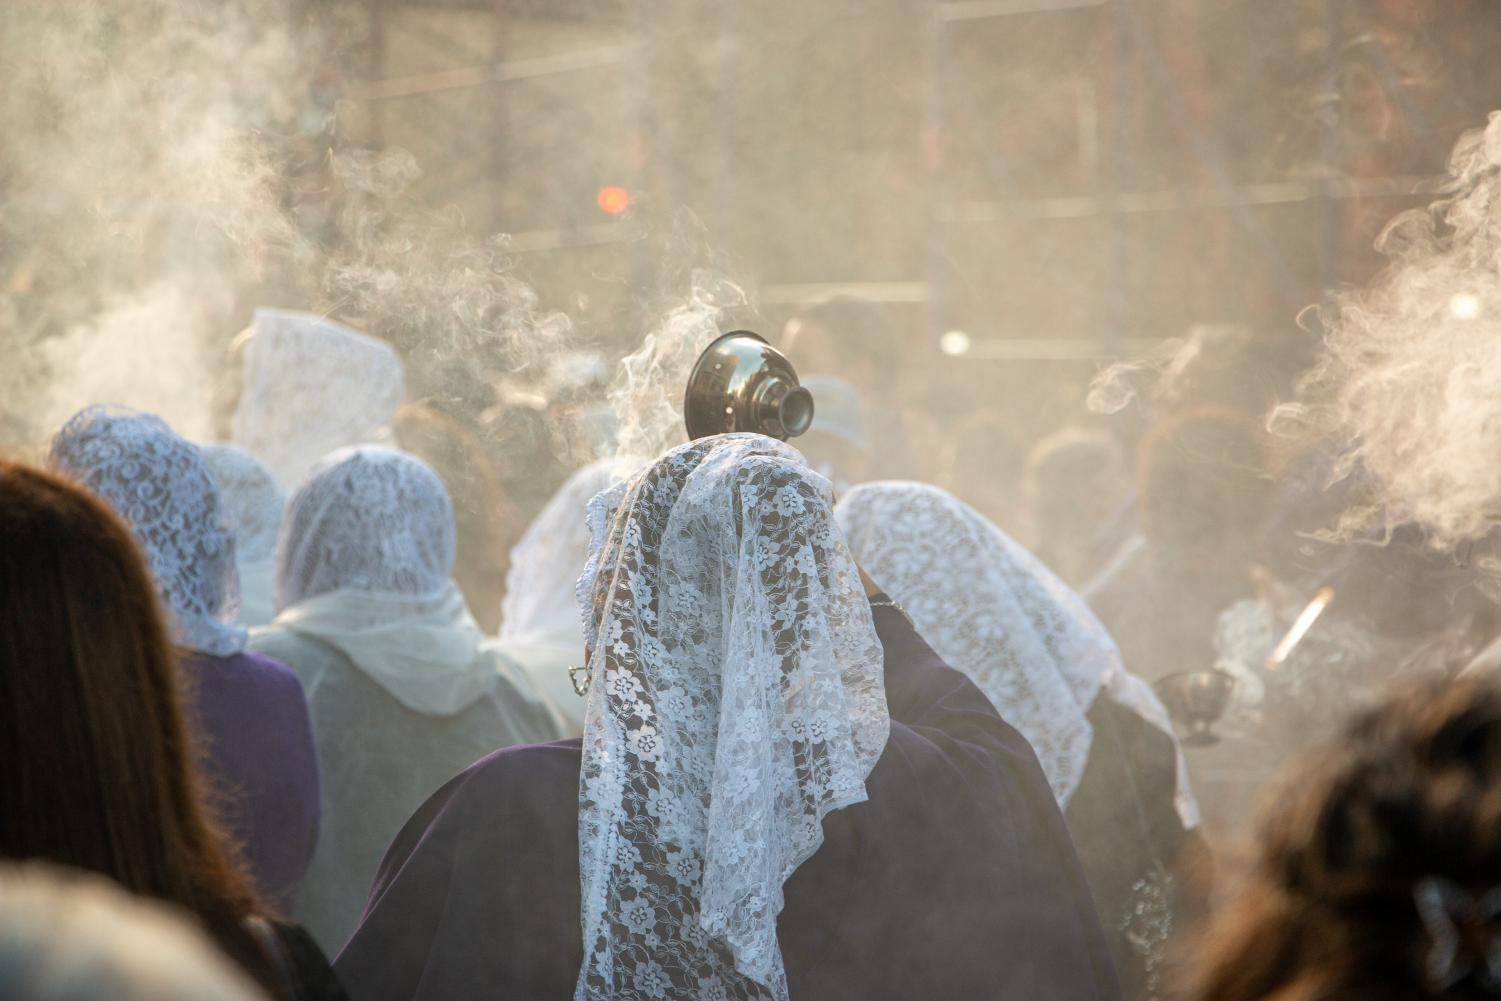 The celebratory sound of horns and the strong smell of incense dominated the Lincoln Center area on Oct. 27 in observation of Señor de los Milagros, a historic Peruvian tradition.